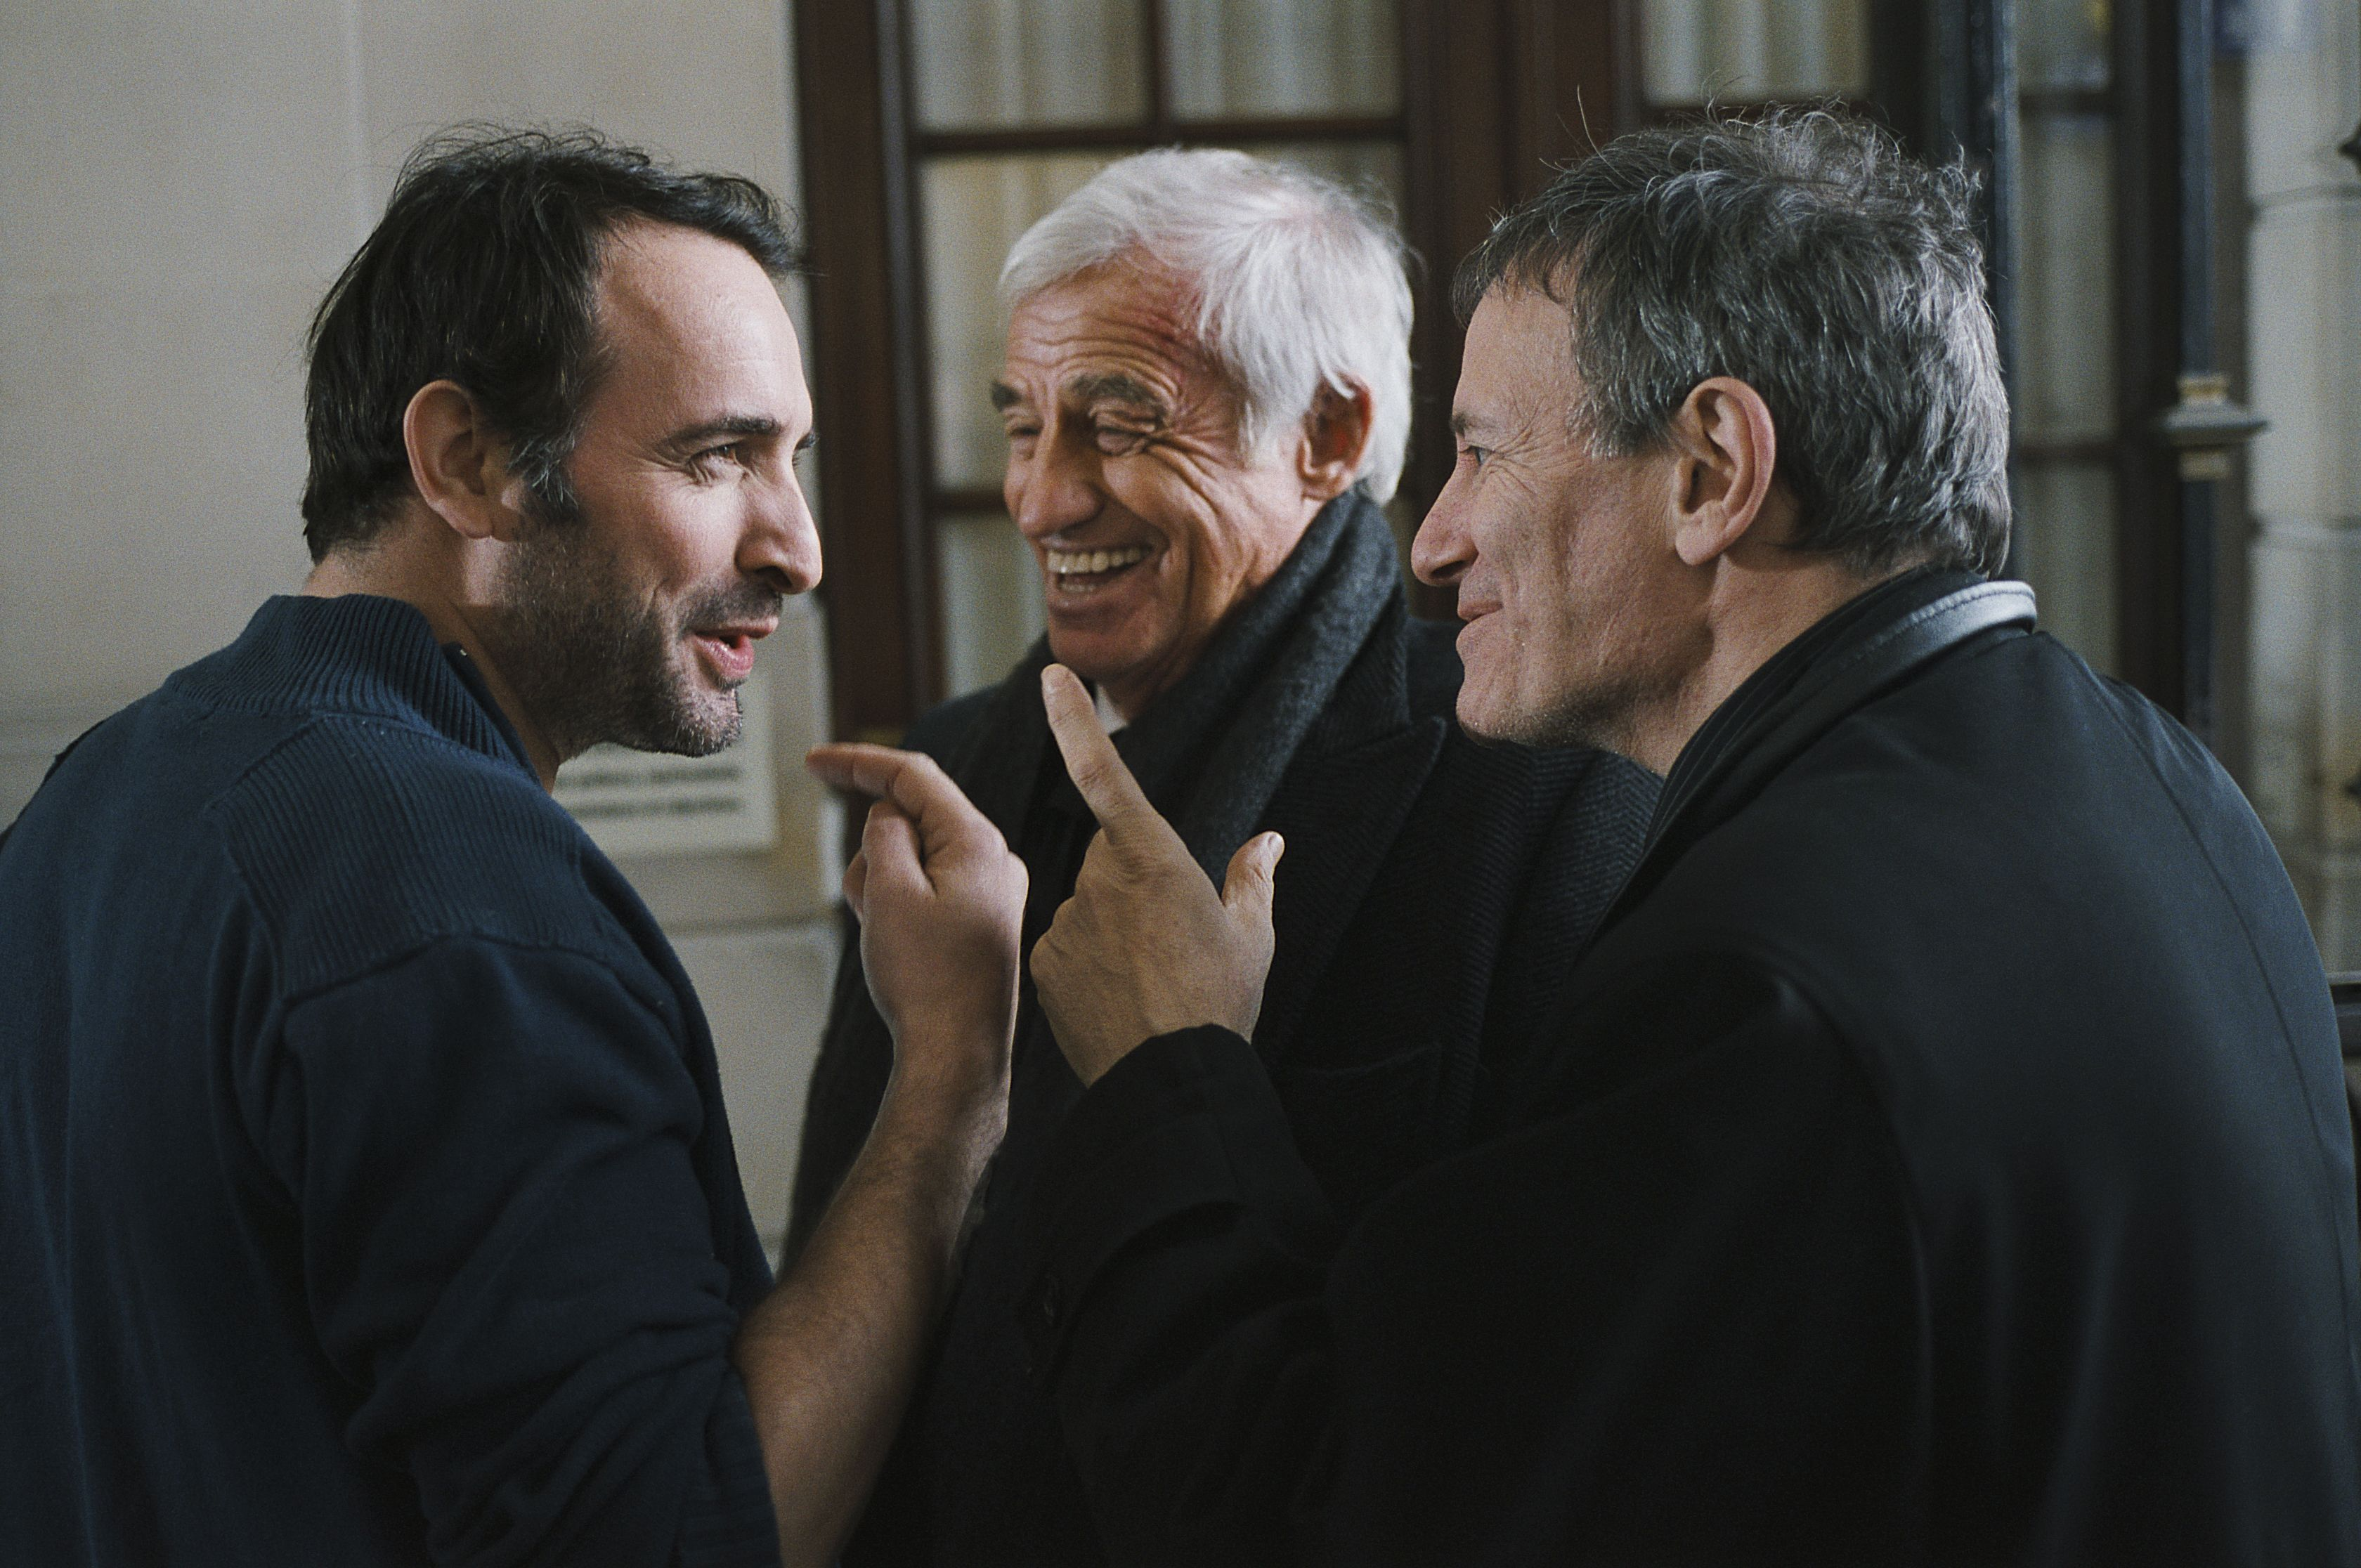 Jean dujardin photo gallery high quality pics of jean for Dujardin belmondo